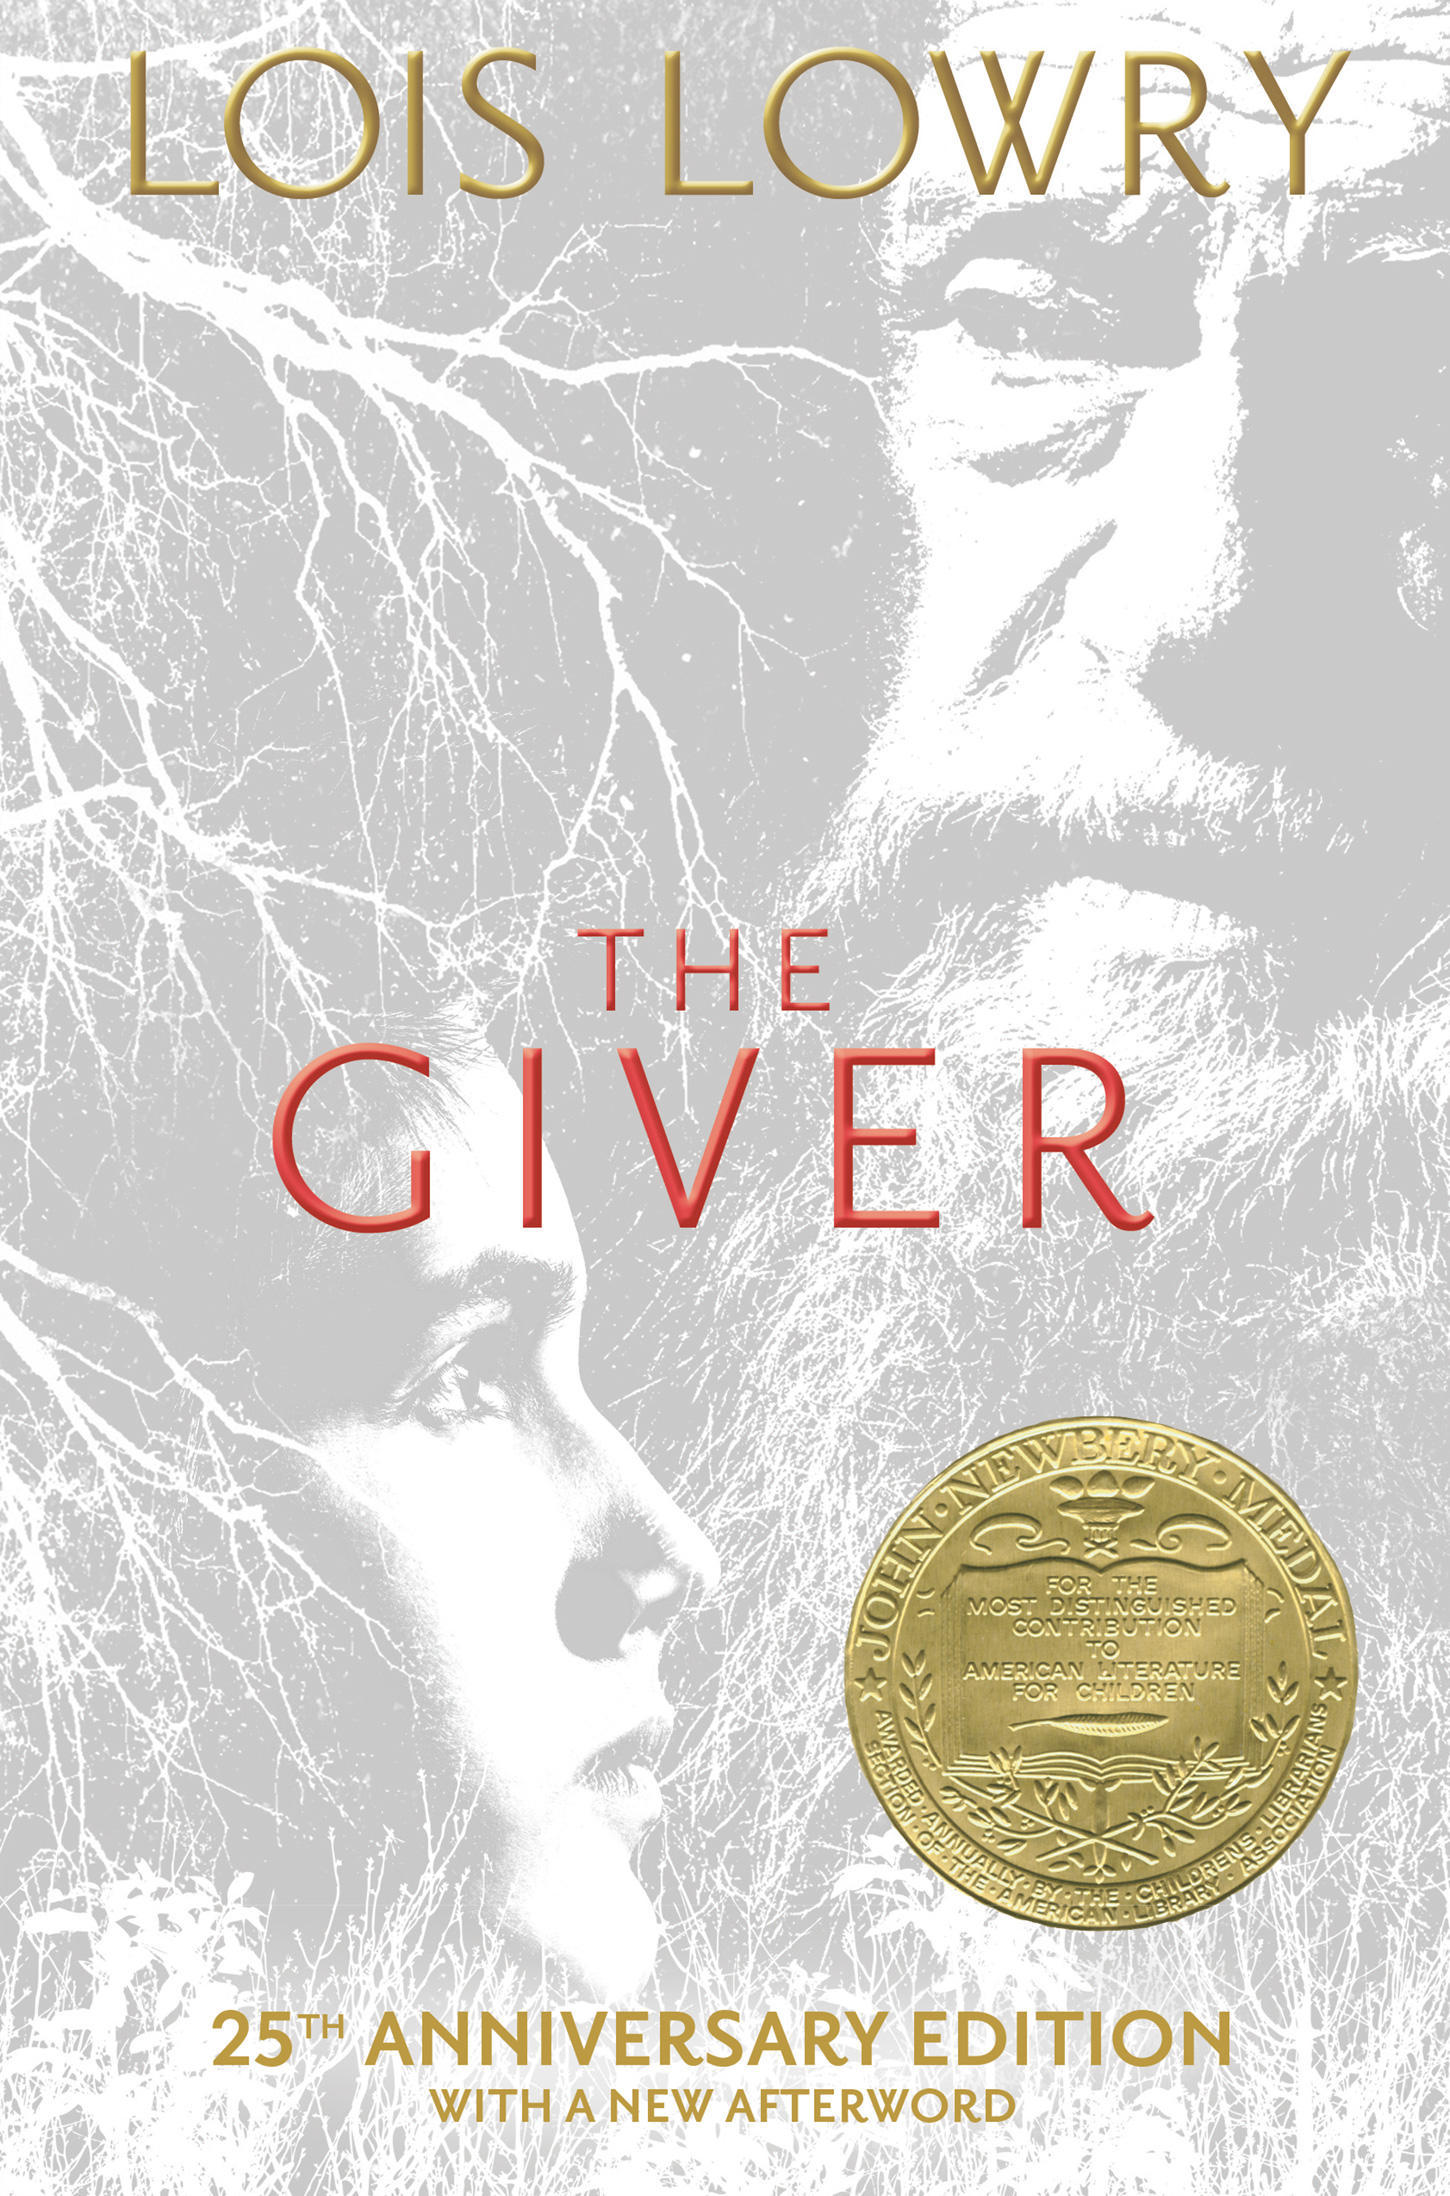 Author Lois Lowry On The 25th Anniversary Of The Giver